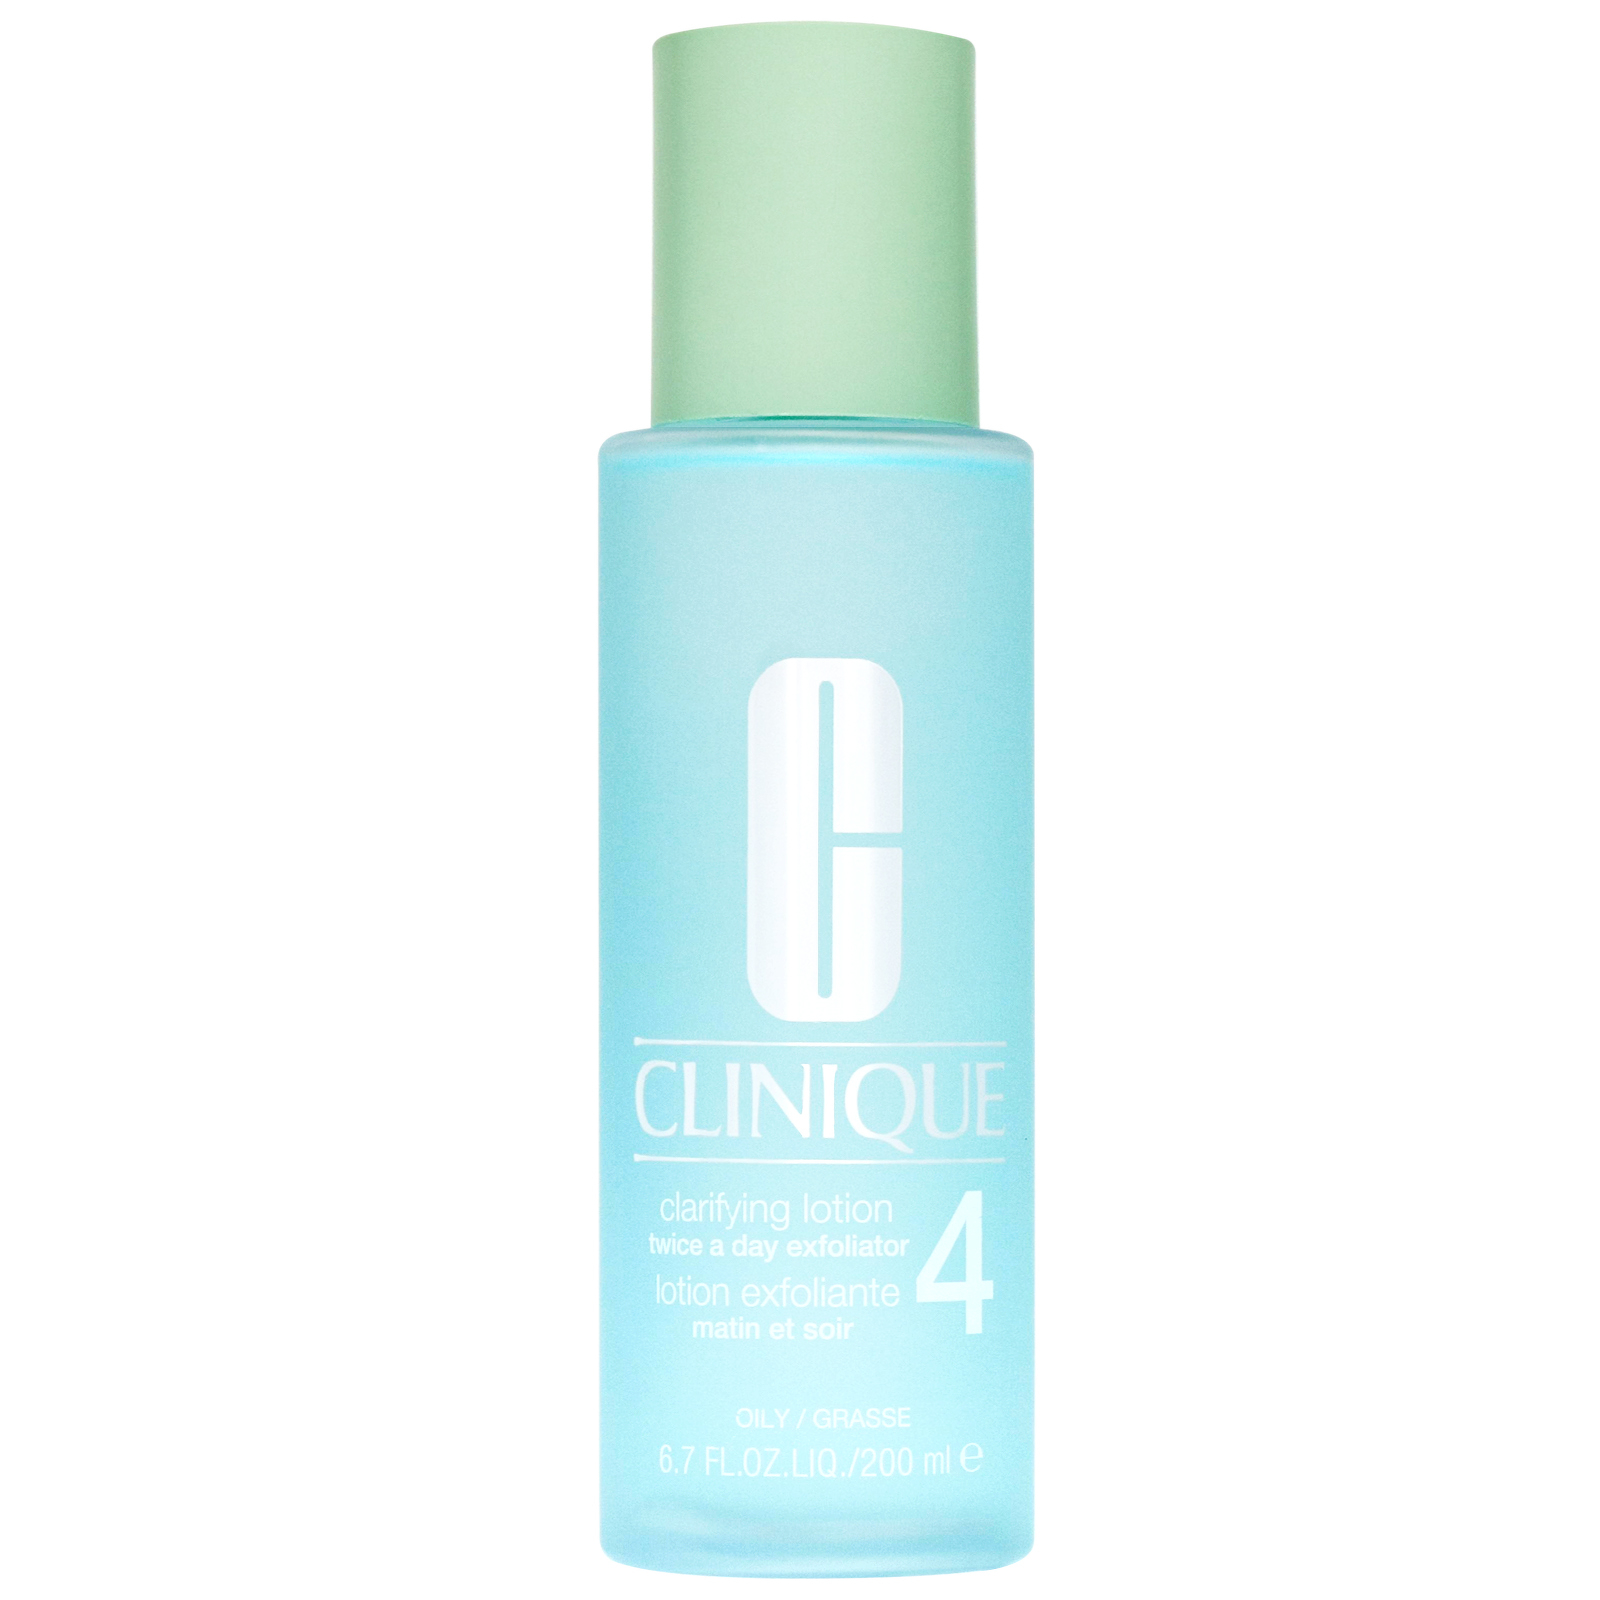 Clinique Cleansers & Makeup Removers Clarifying Lotion Twice A Day Exfoliator 4 for Oily Skin 200ml / 6.7 fl.oz.